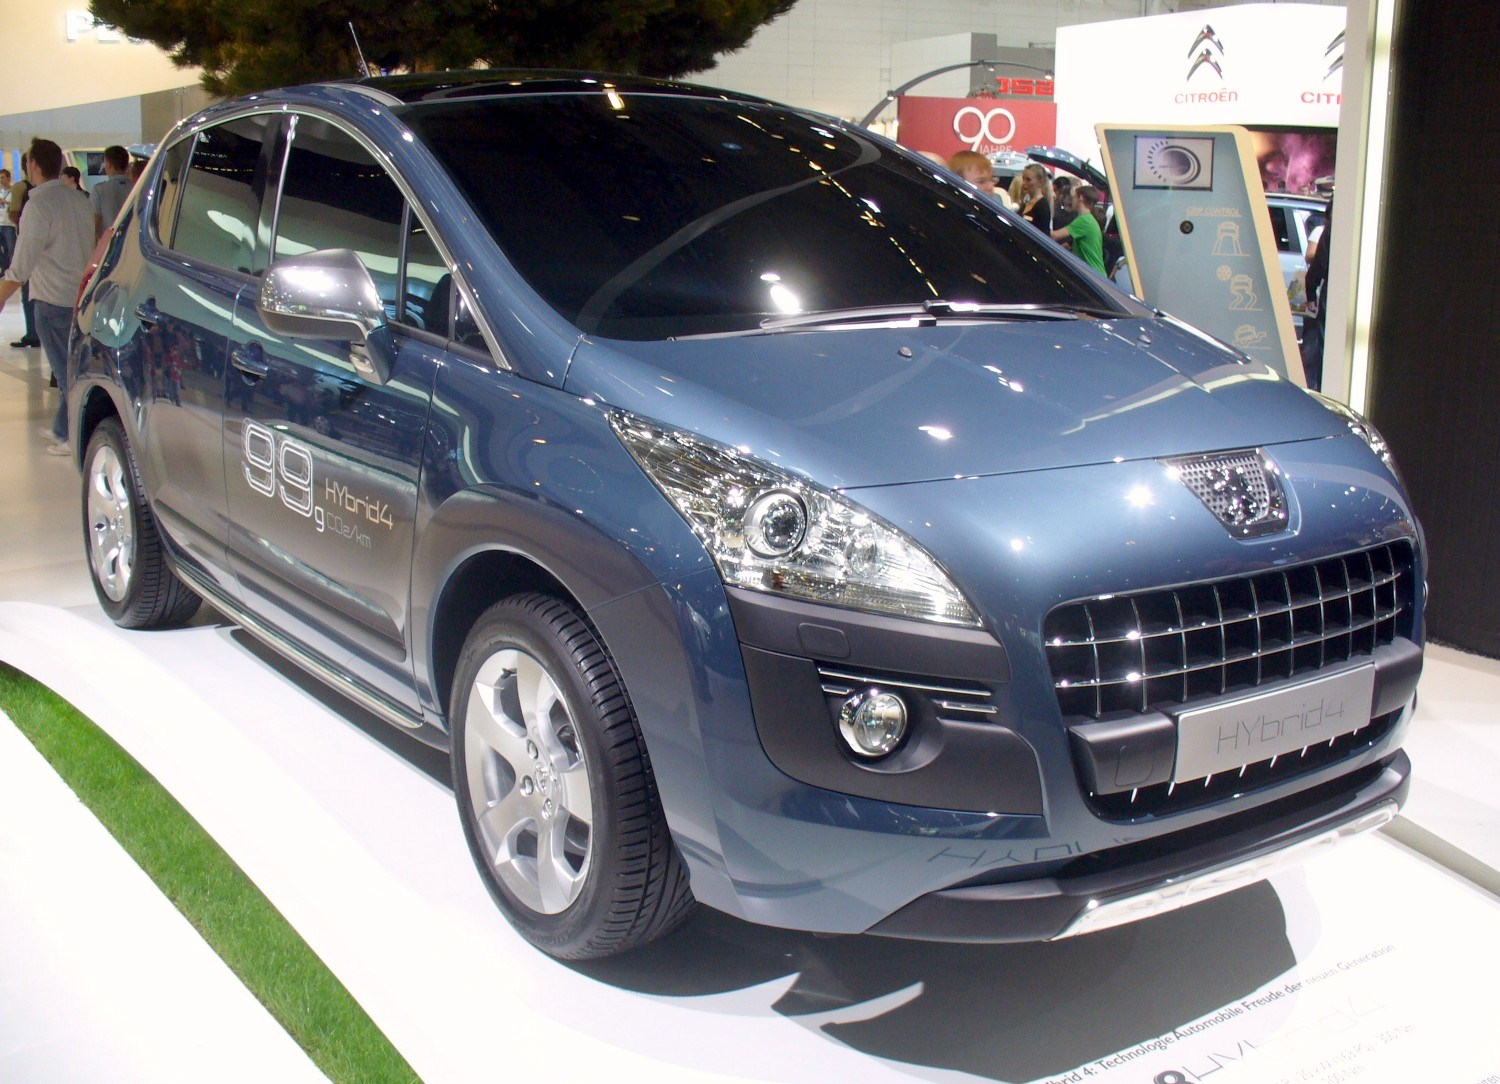 http://upload.wikimedia.org/wikipedia/commons/1/16/Peugeot_3008_HYbrid4.JPG